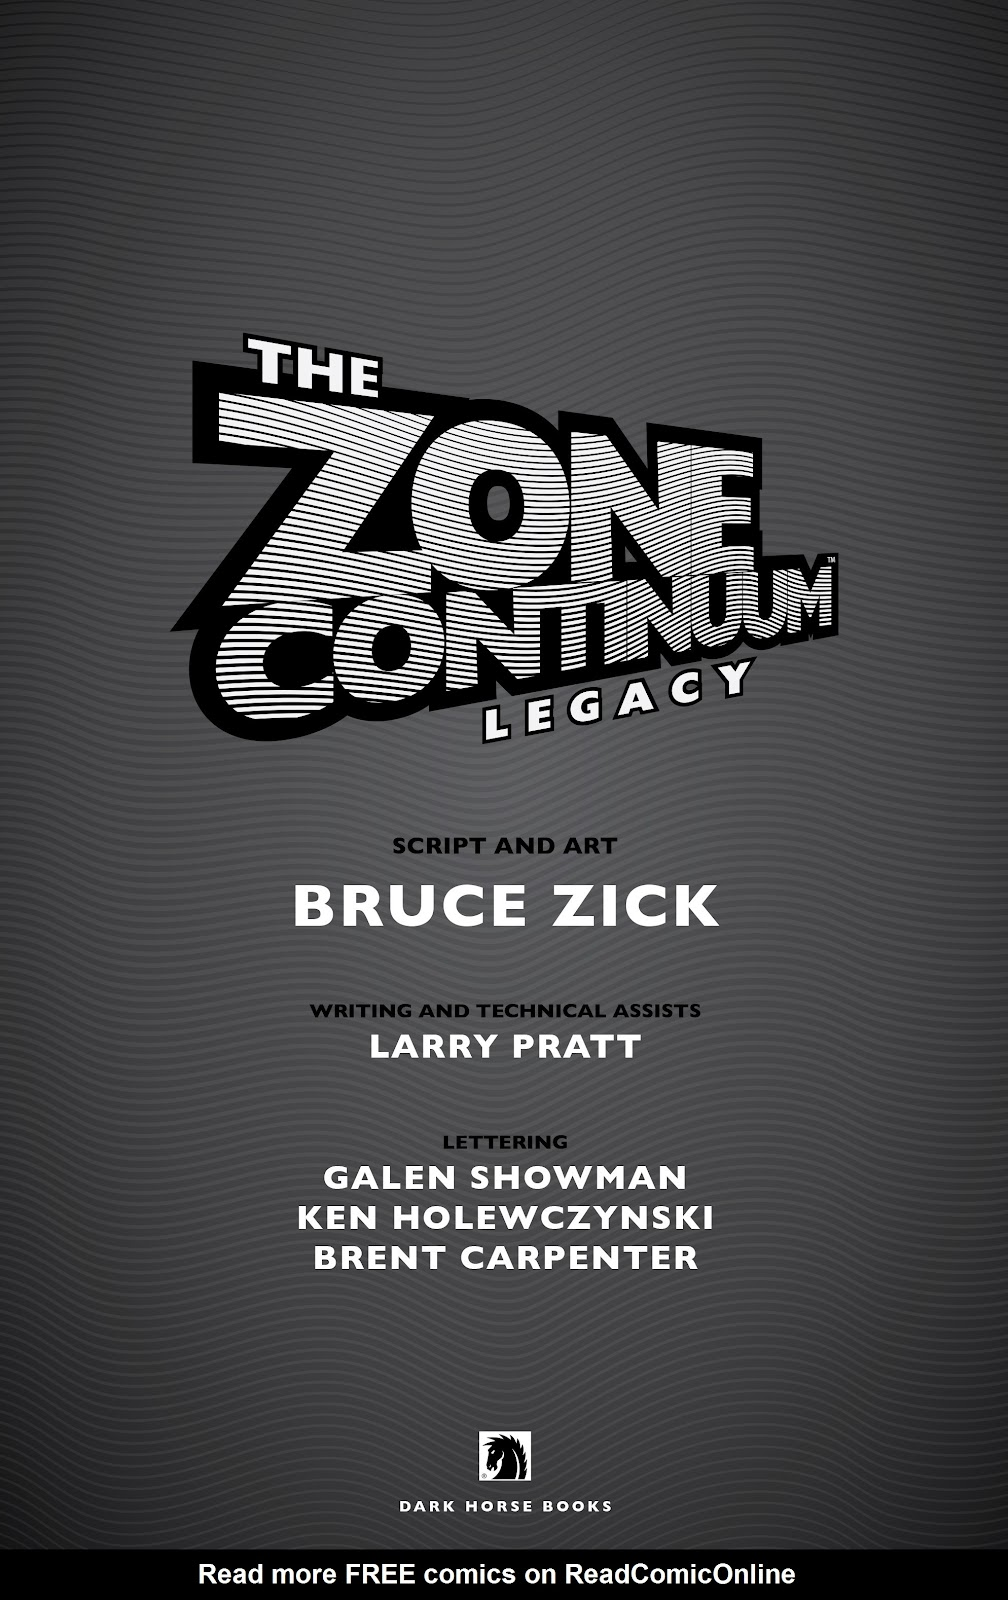 Read online The Zone Continuum: Legacy comic -  Issue # TPB - 5